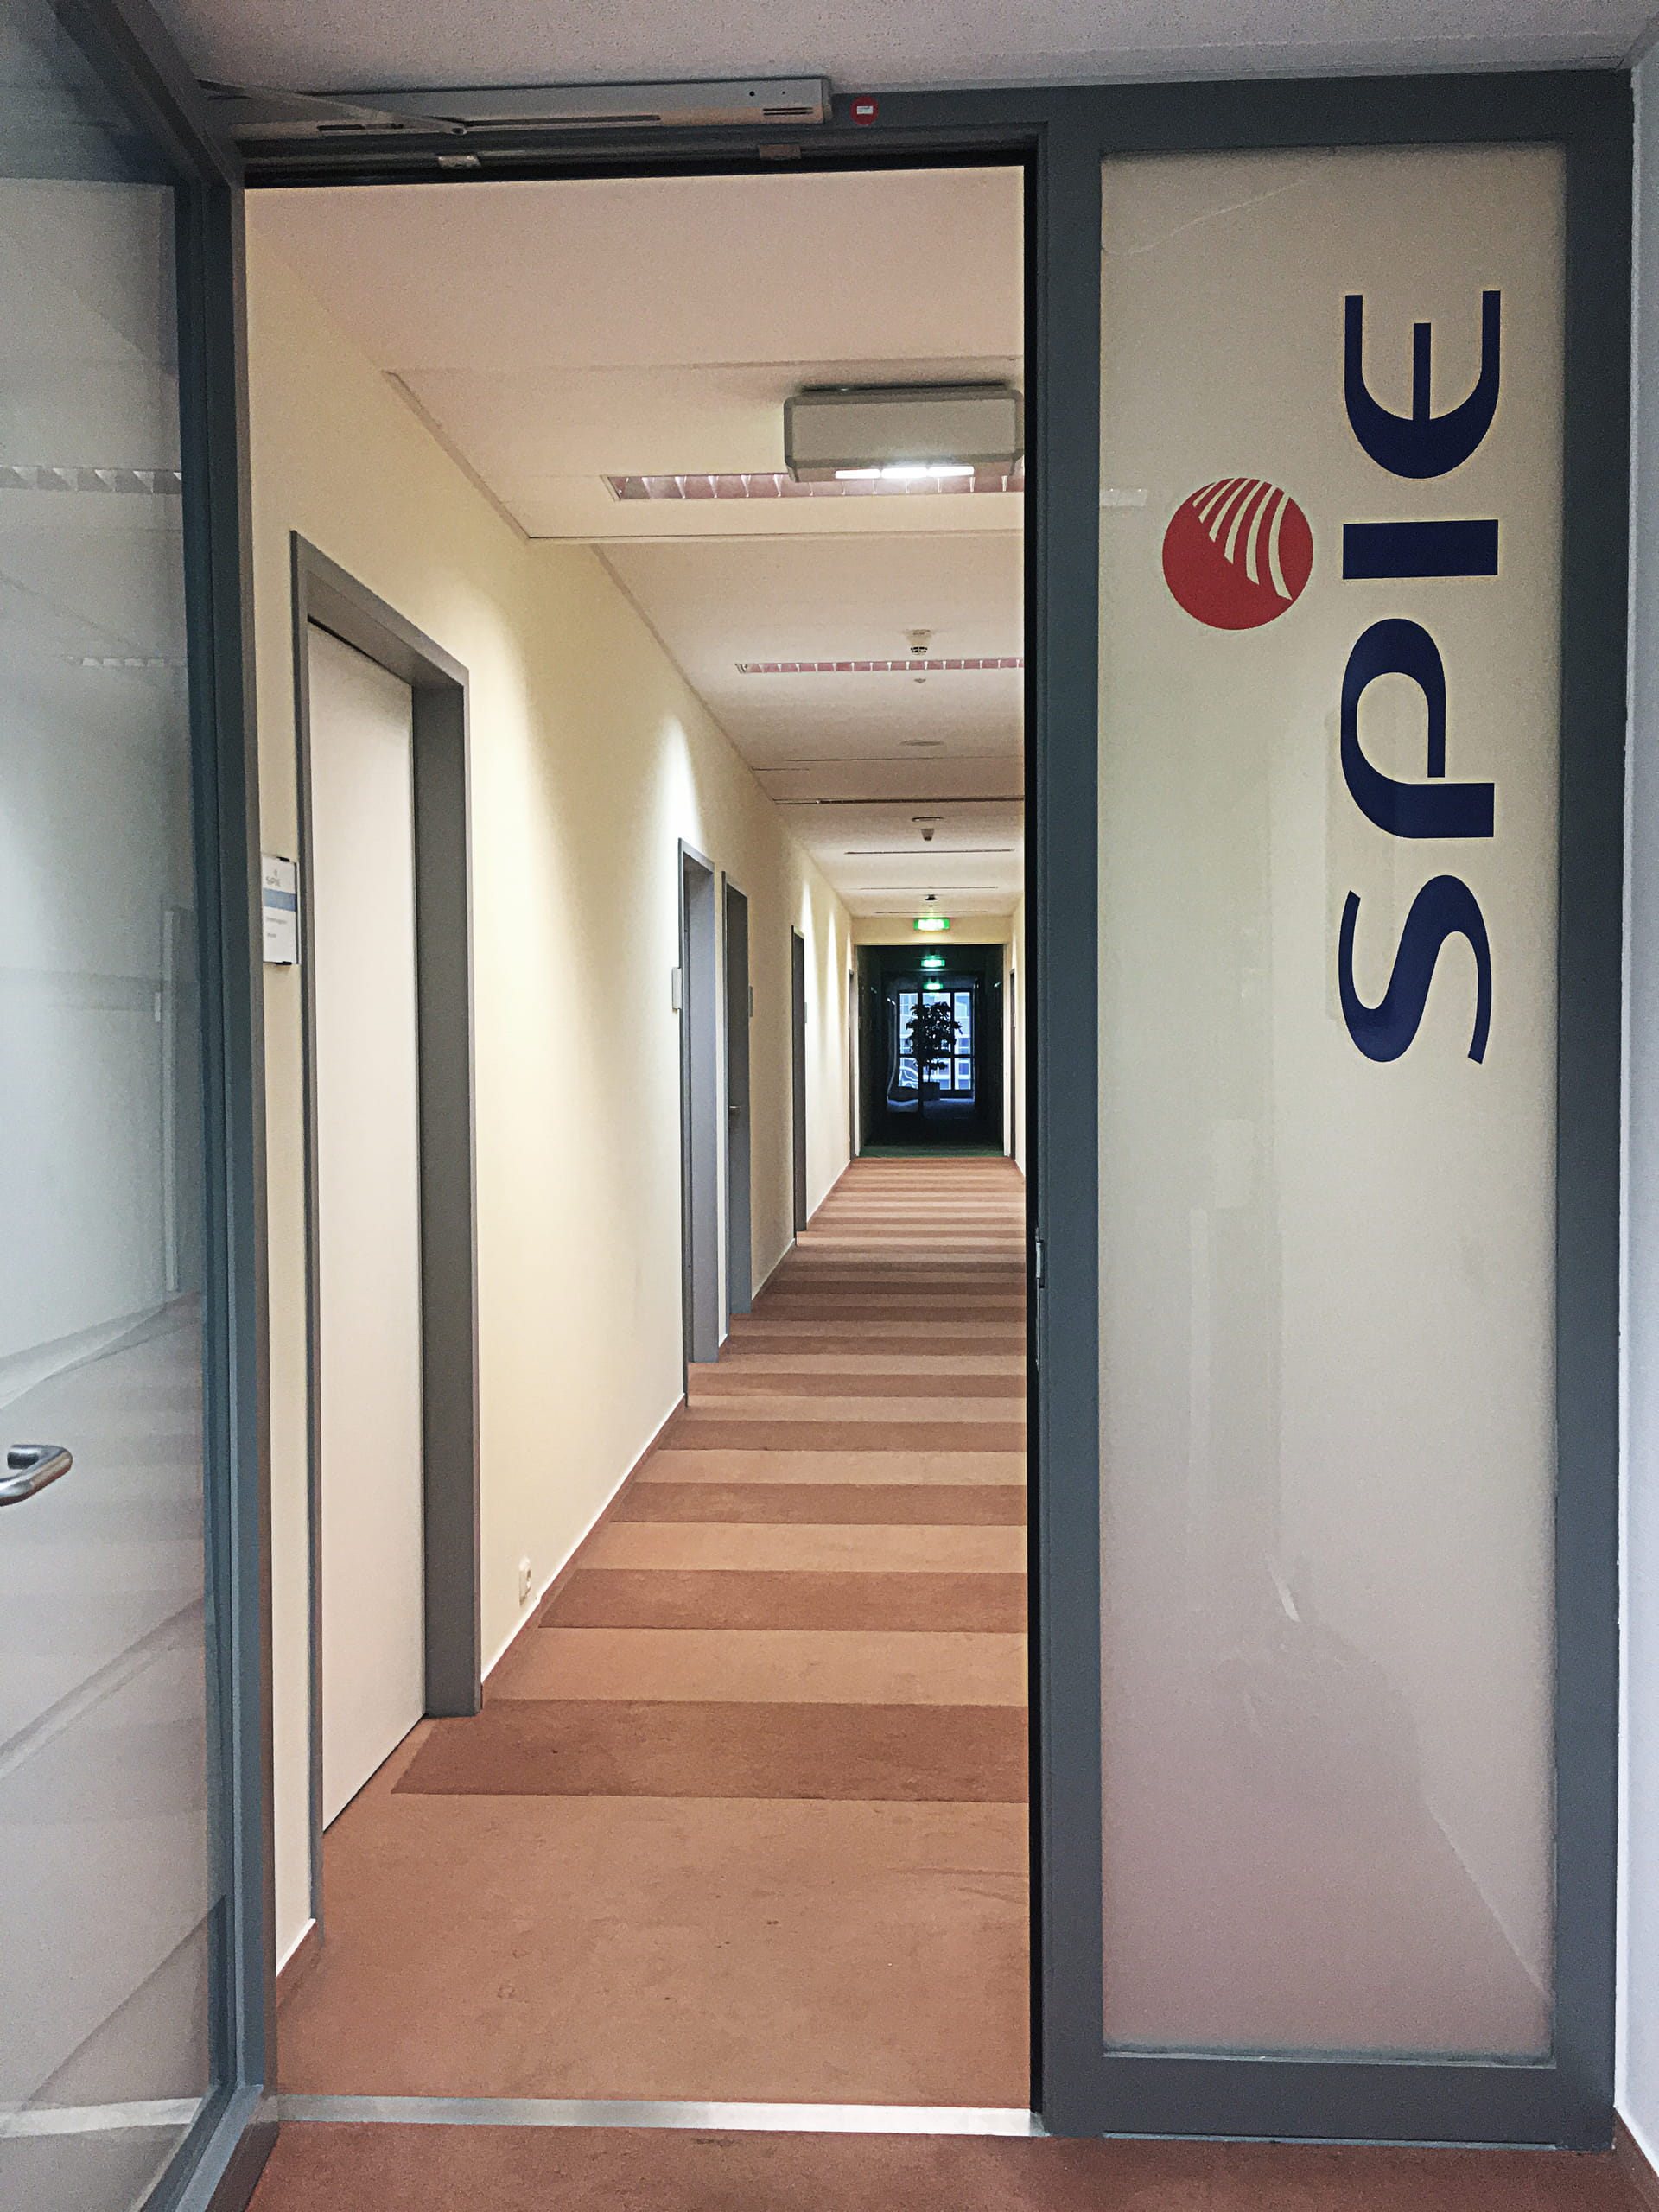 Full-surface privacy protection with frosted glass foil and logo lettering for companies from anplakt